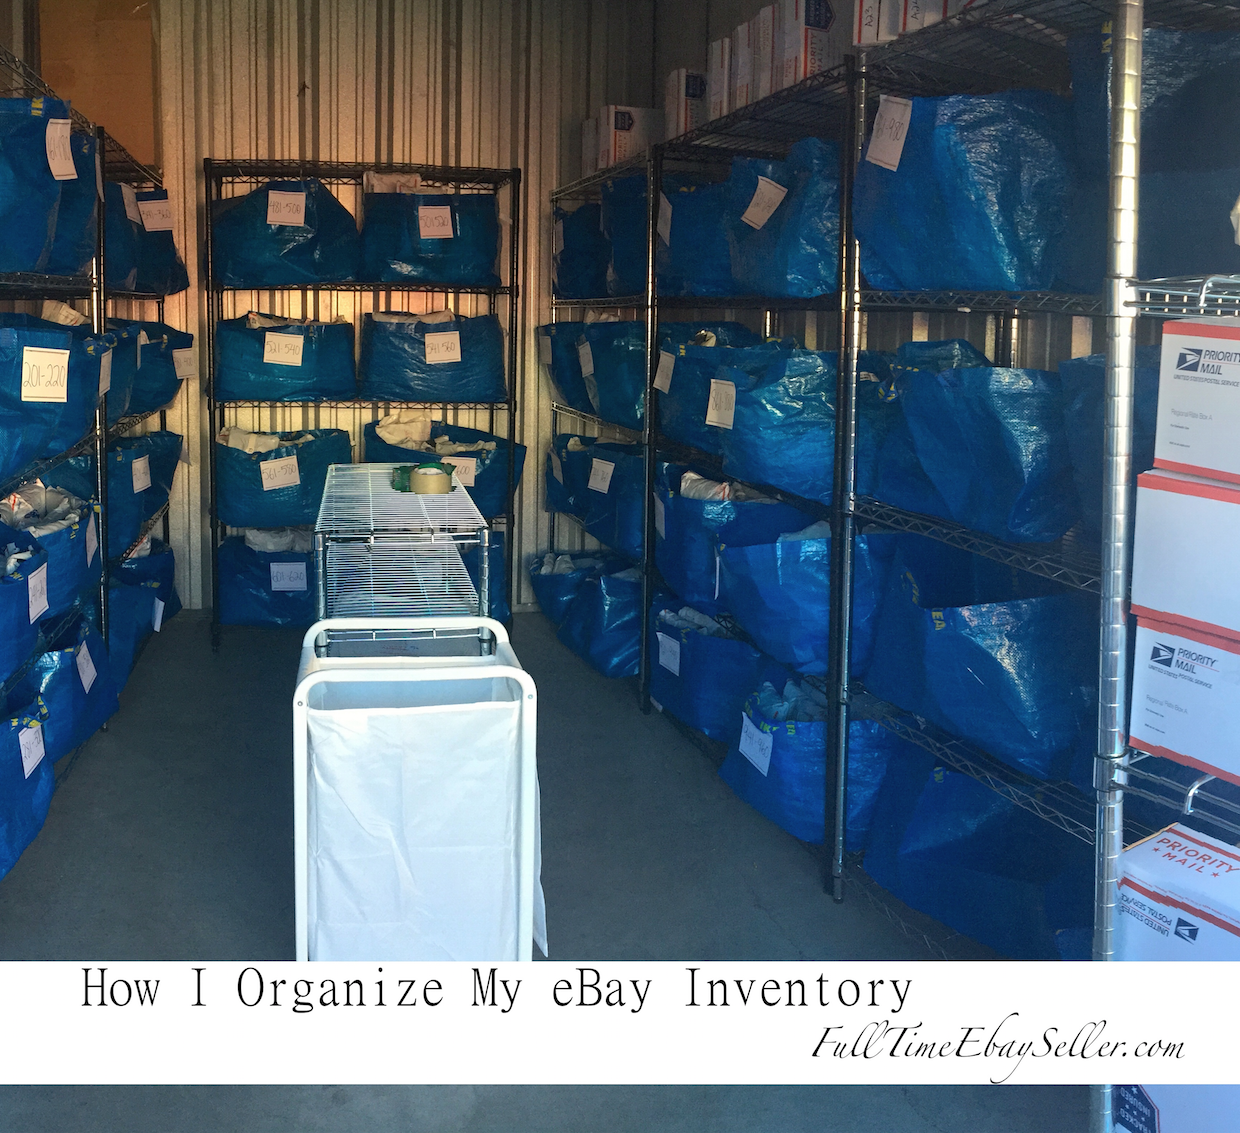 hight resolution of how they organize their ebay inventory using ikea blue bags and a numbered system